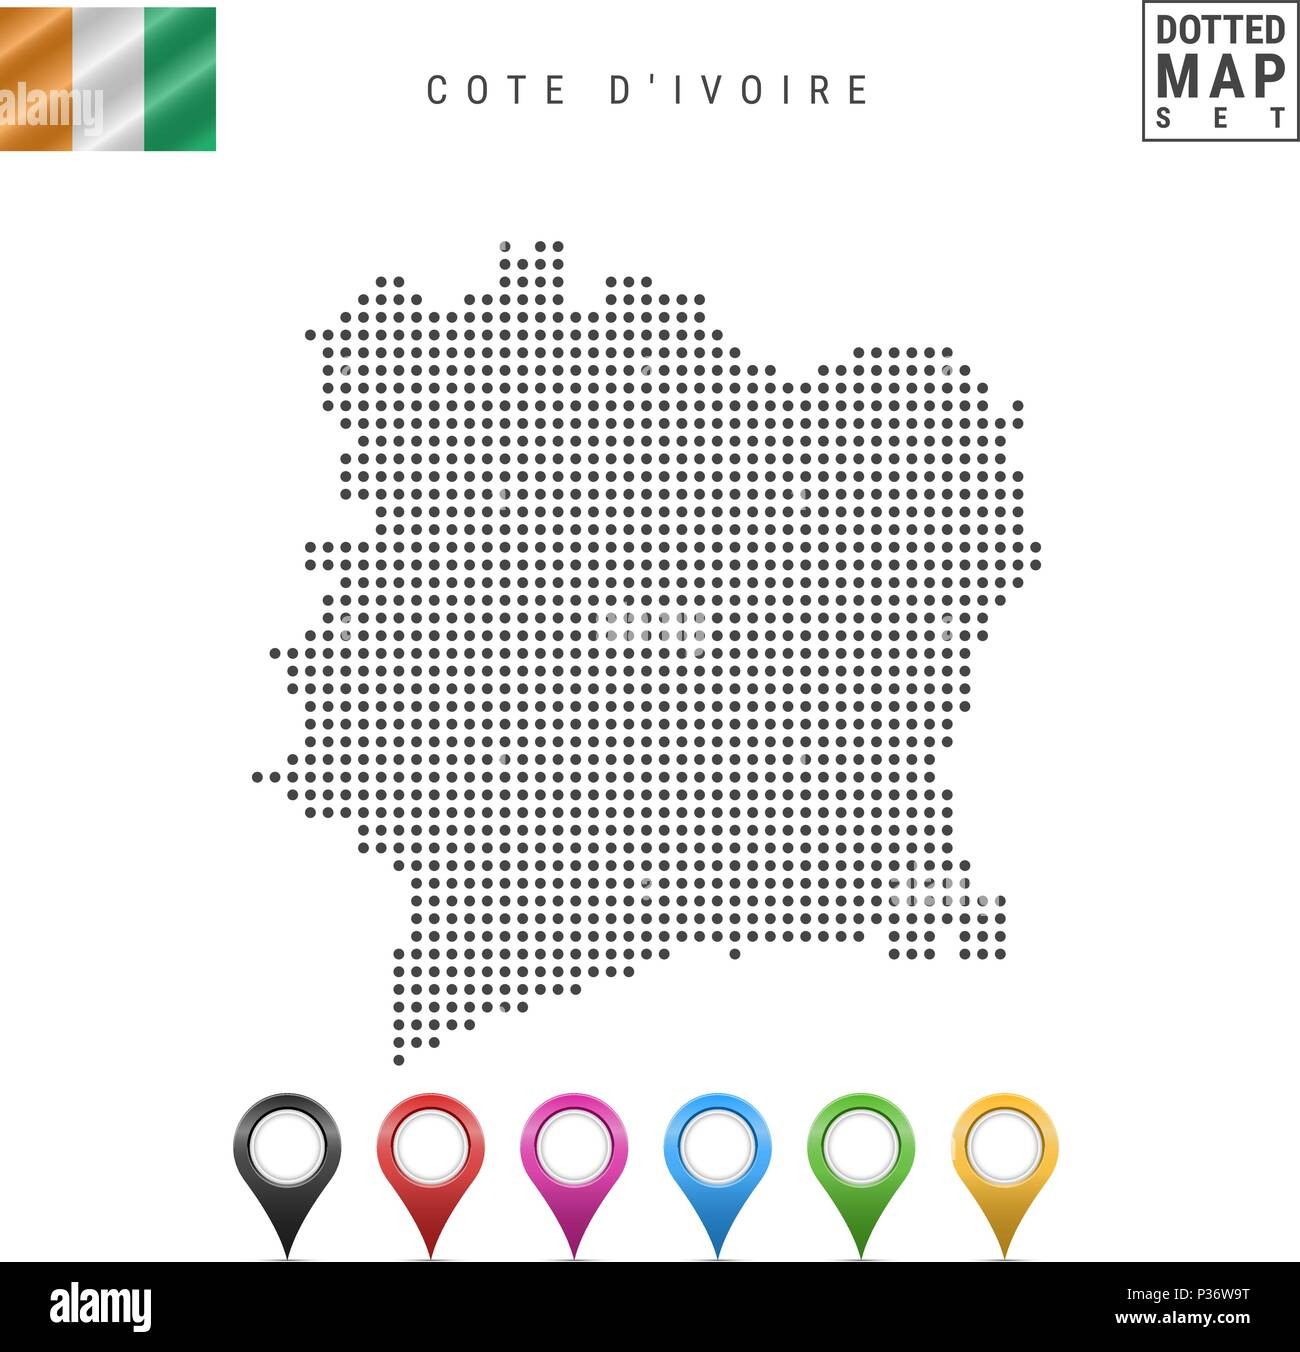 Vector Dotted Map of Cote D'Ivoire. Simple Silhouette of Cote D'Ivoire. Flag of Cote D'Ivoire. Multicolored Map Markers - Stock Image